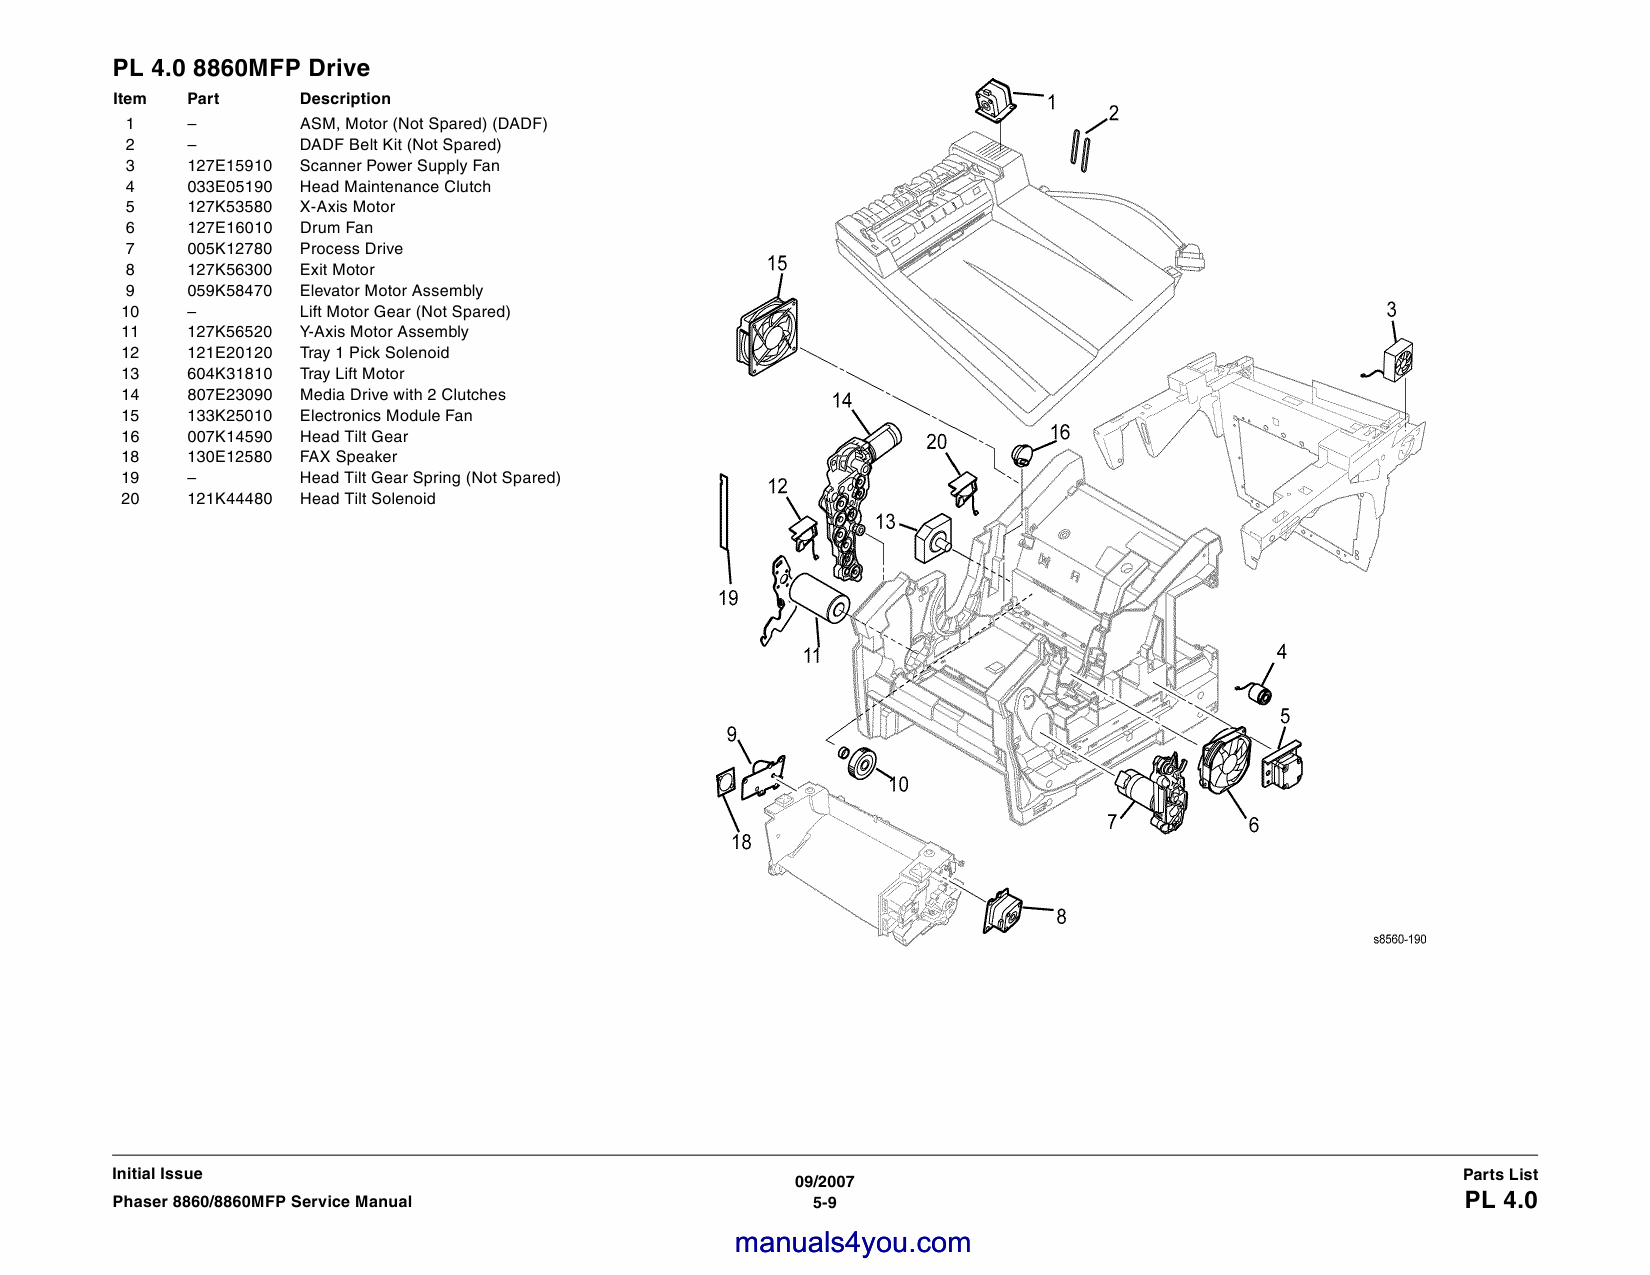 Xerox Phaser 8860 8860-MFP Parts List and Service Manual